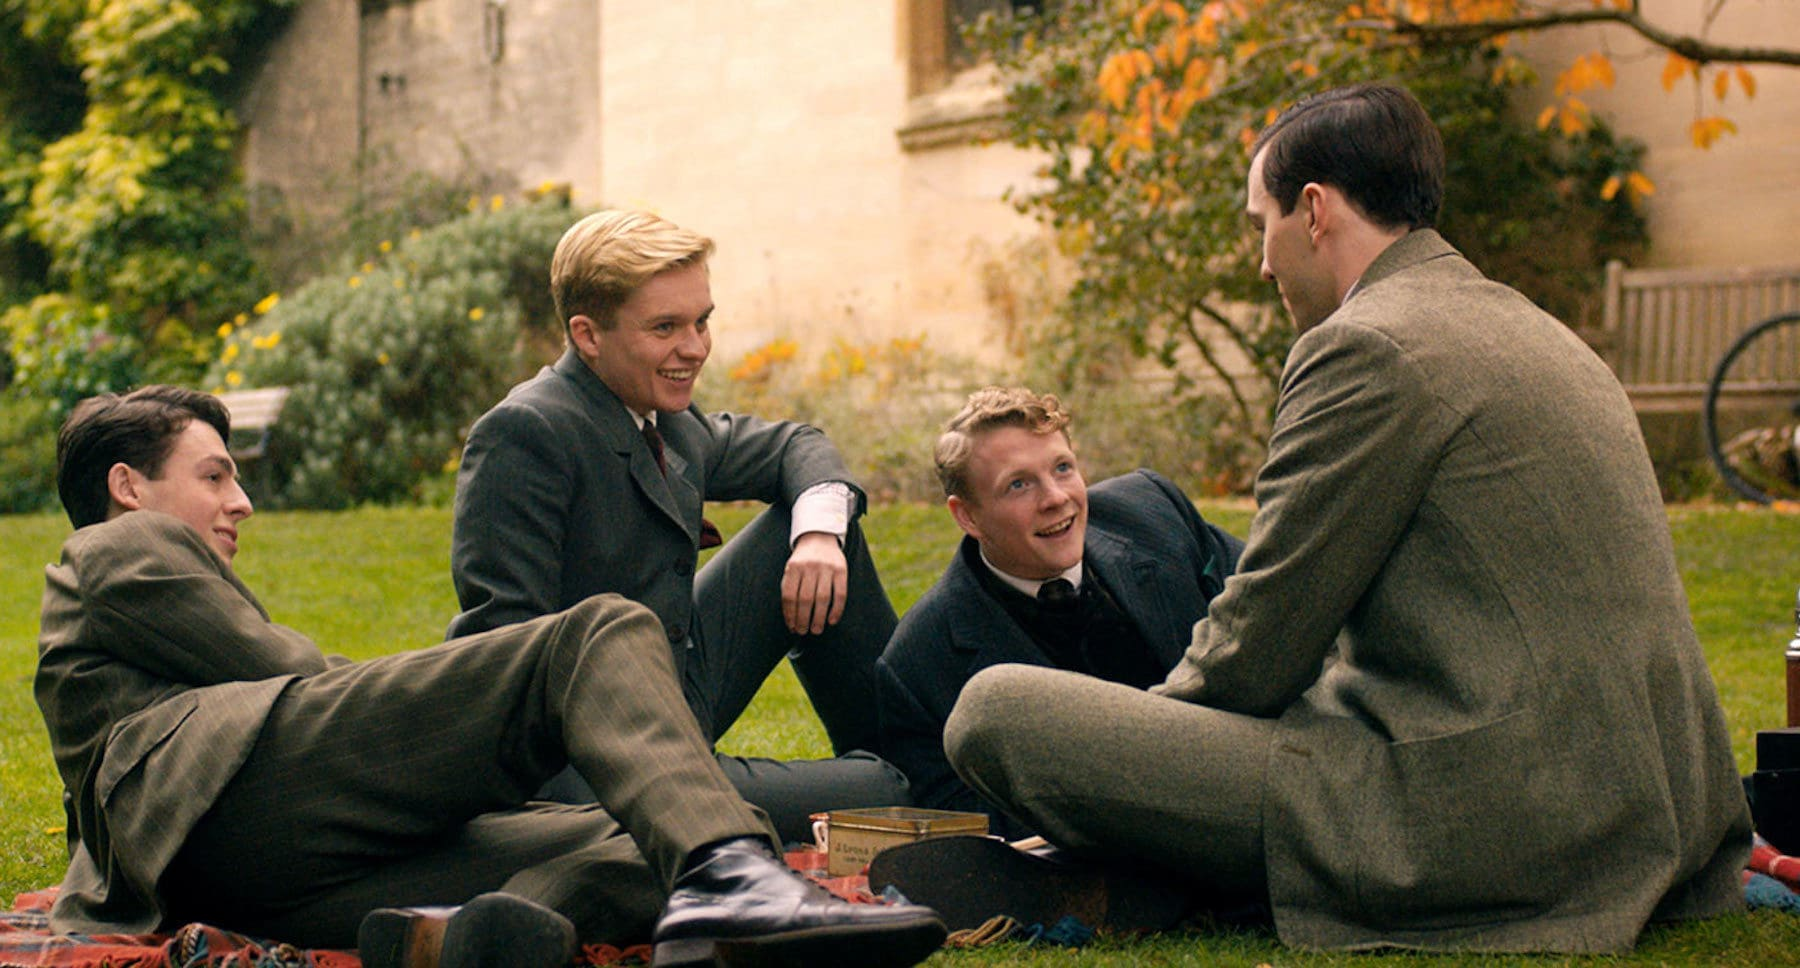 """Nicholas Hoult, Patrick Gibson, Anthony Boyle, and Tom Glynn-Carney at a picnic in """"Tolkien"""""""